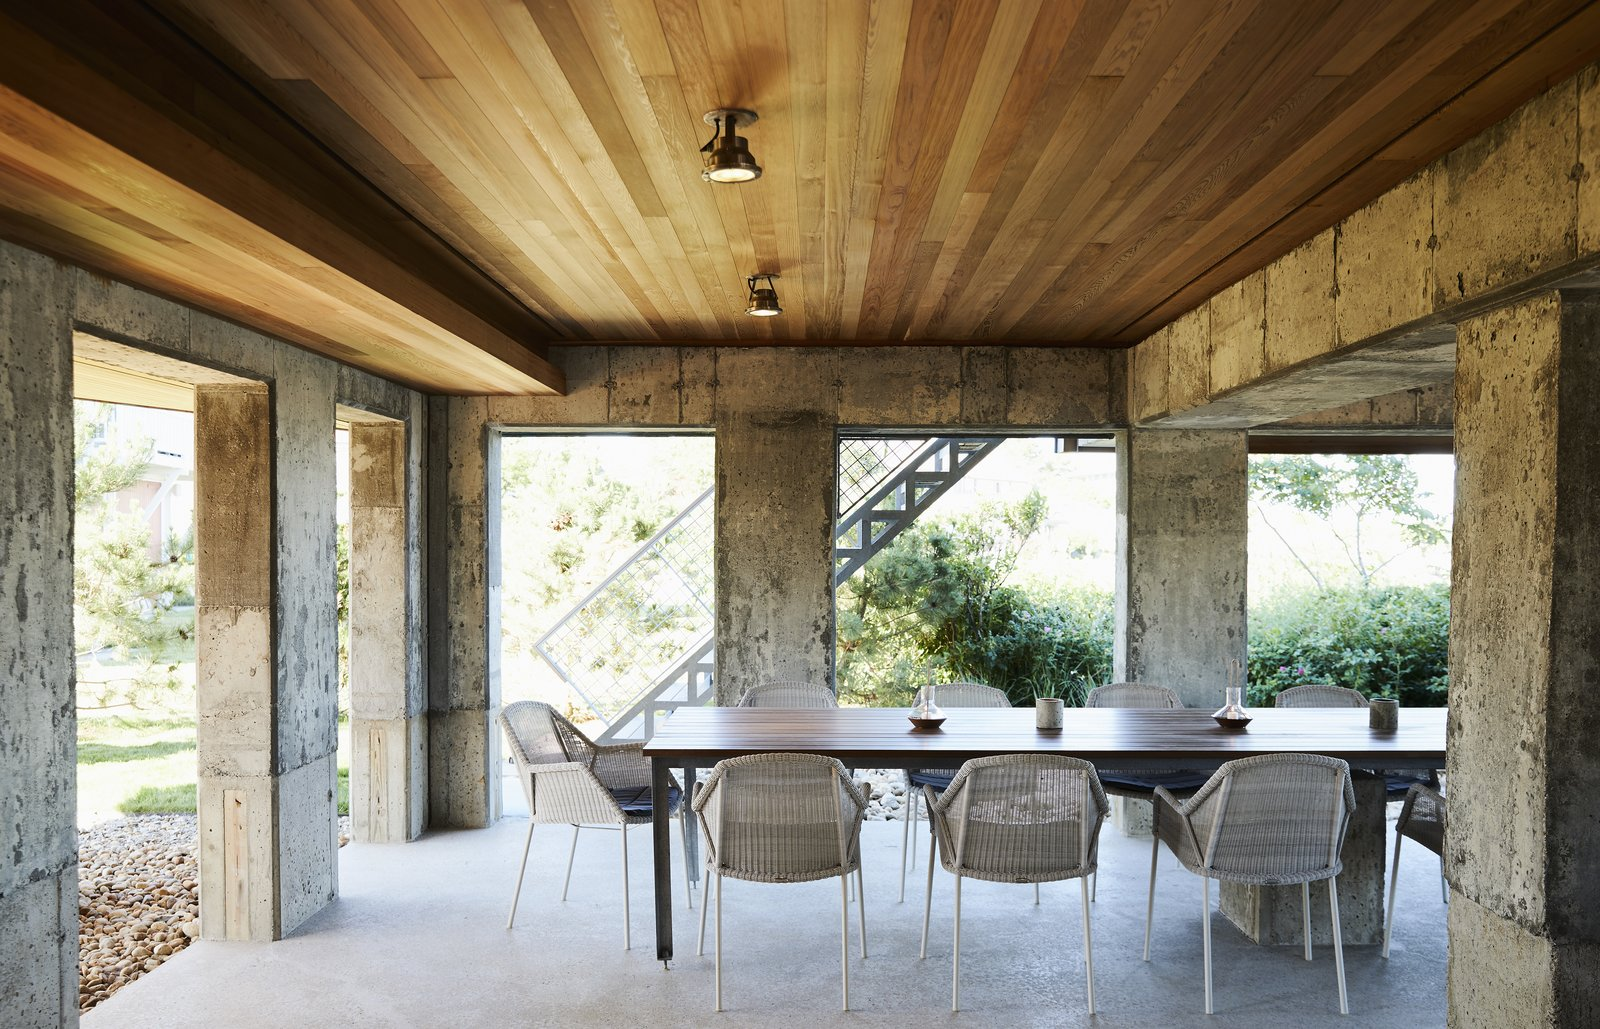 Dining Room, Chair, Concrete Floor, Ceiling Lighting, and Table Once a musty crawl space, the new porch features a custom built-in table and Cane-line Breeze chairs. - Rockport, Massachusetts Dwell Magazine : November / December 2017  Best Photos from On the Coast of Massachusetts, a Prefab Ranch Is Totally Overhauled for a Wheelchair-User